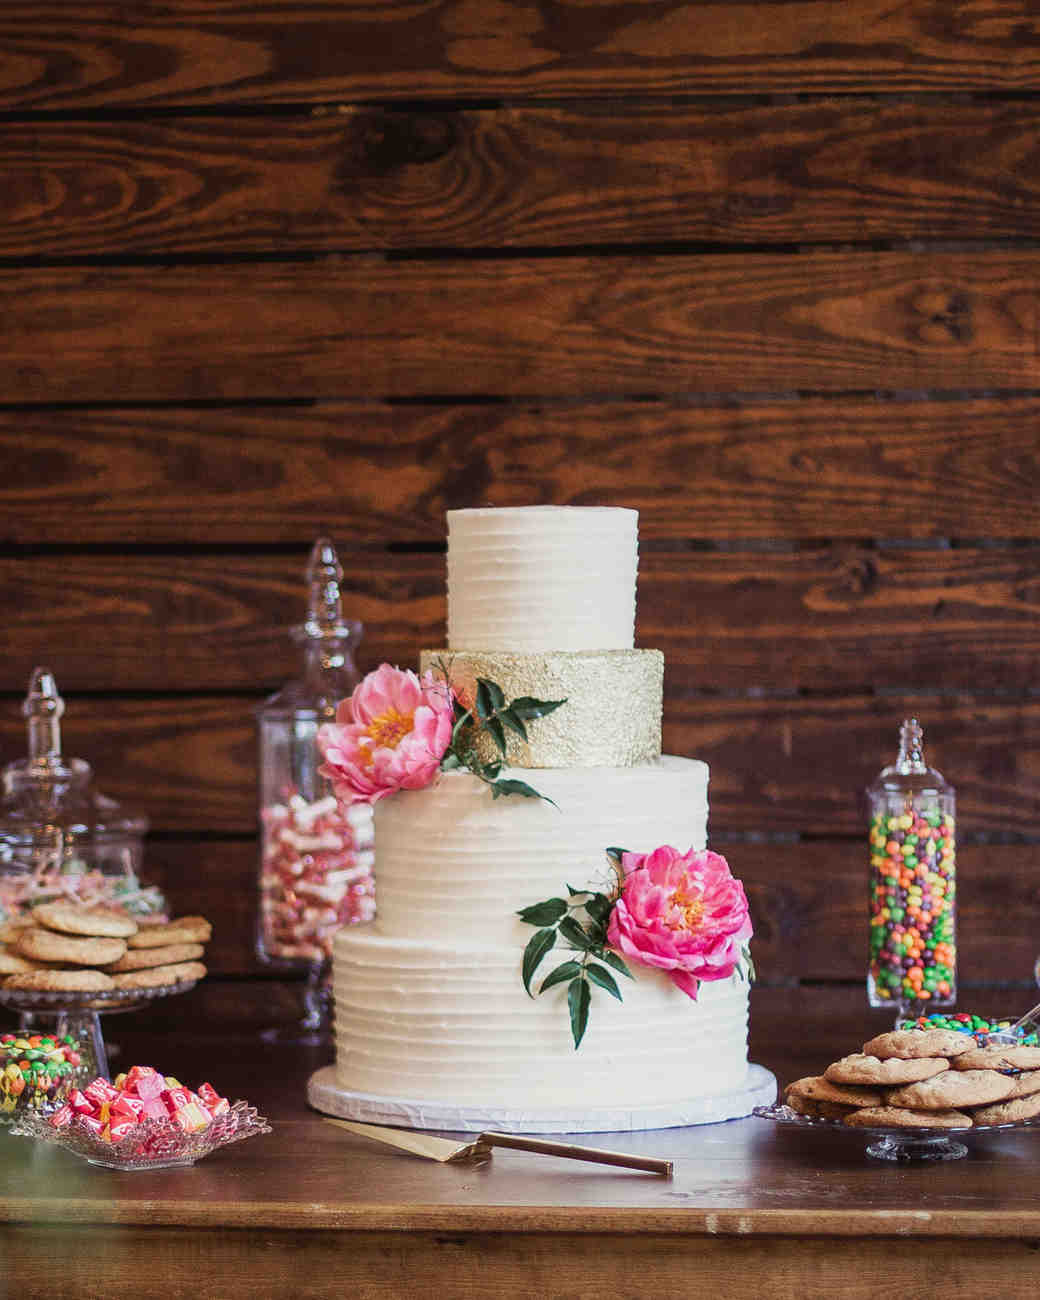 tara-dan-wedding-texas-cake-candy-022-s112848.jpg